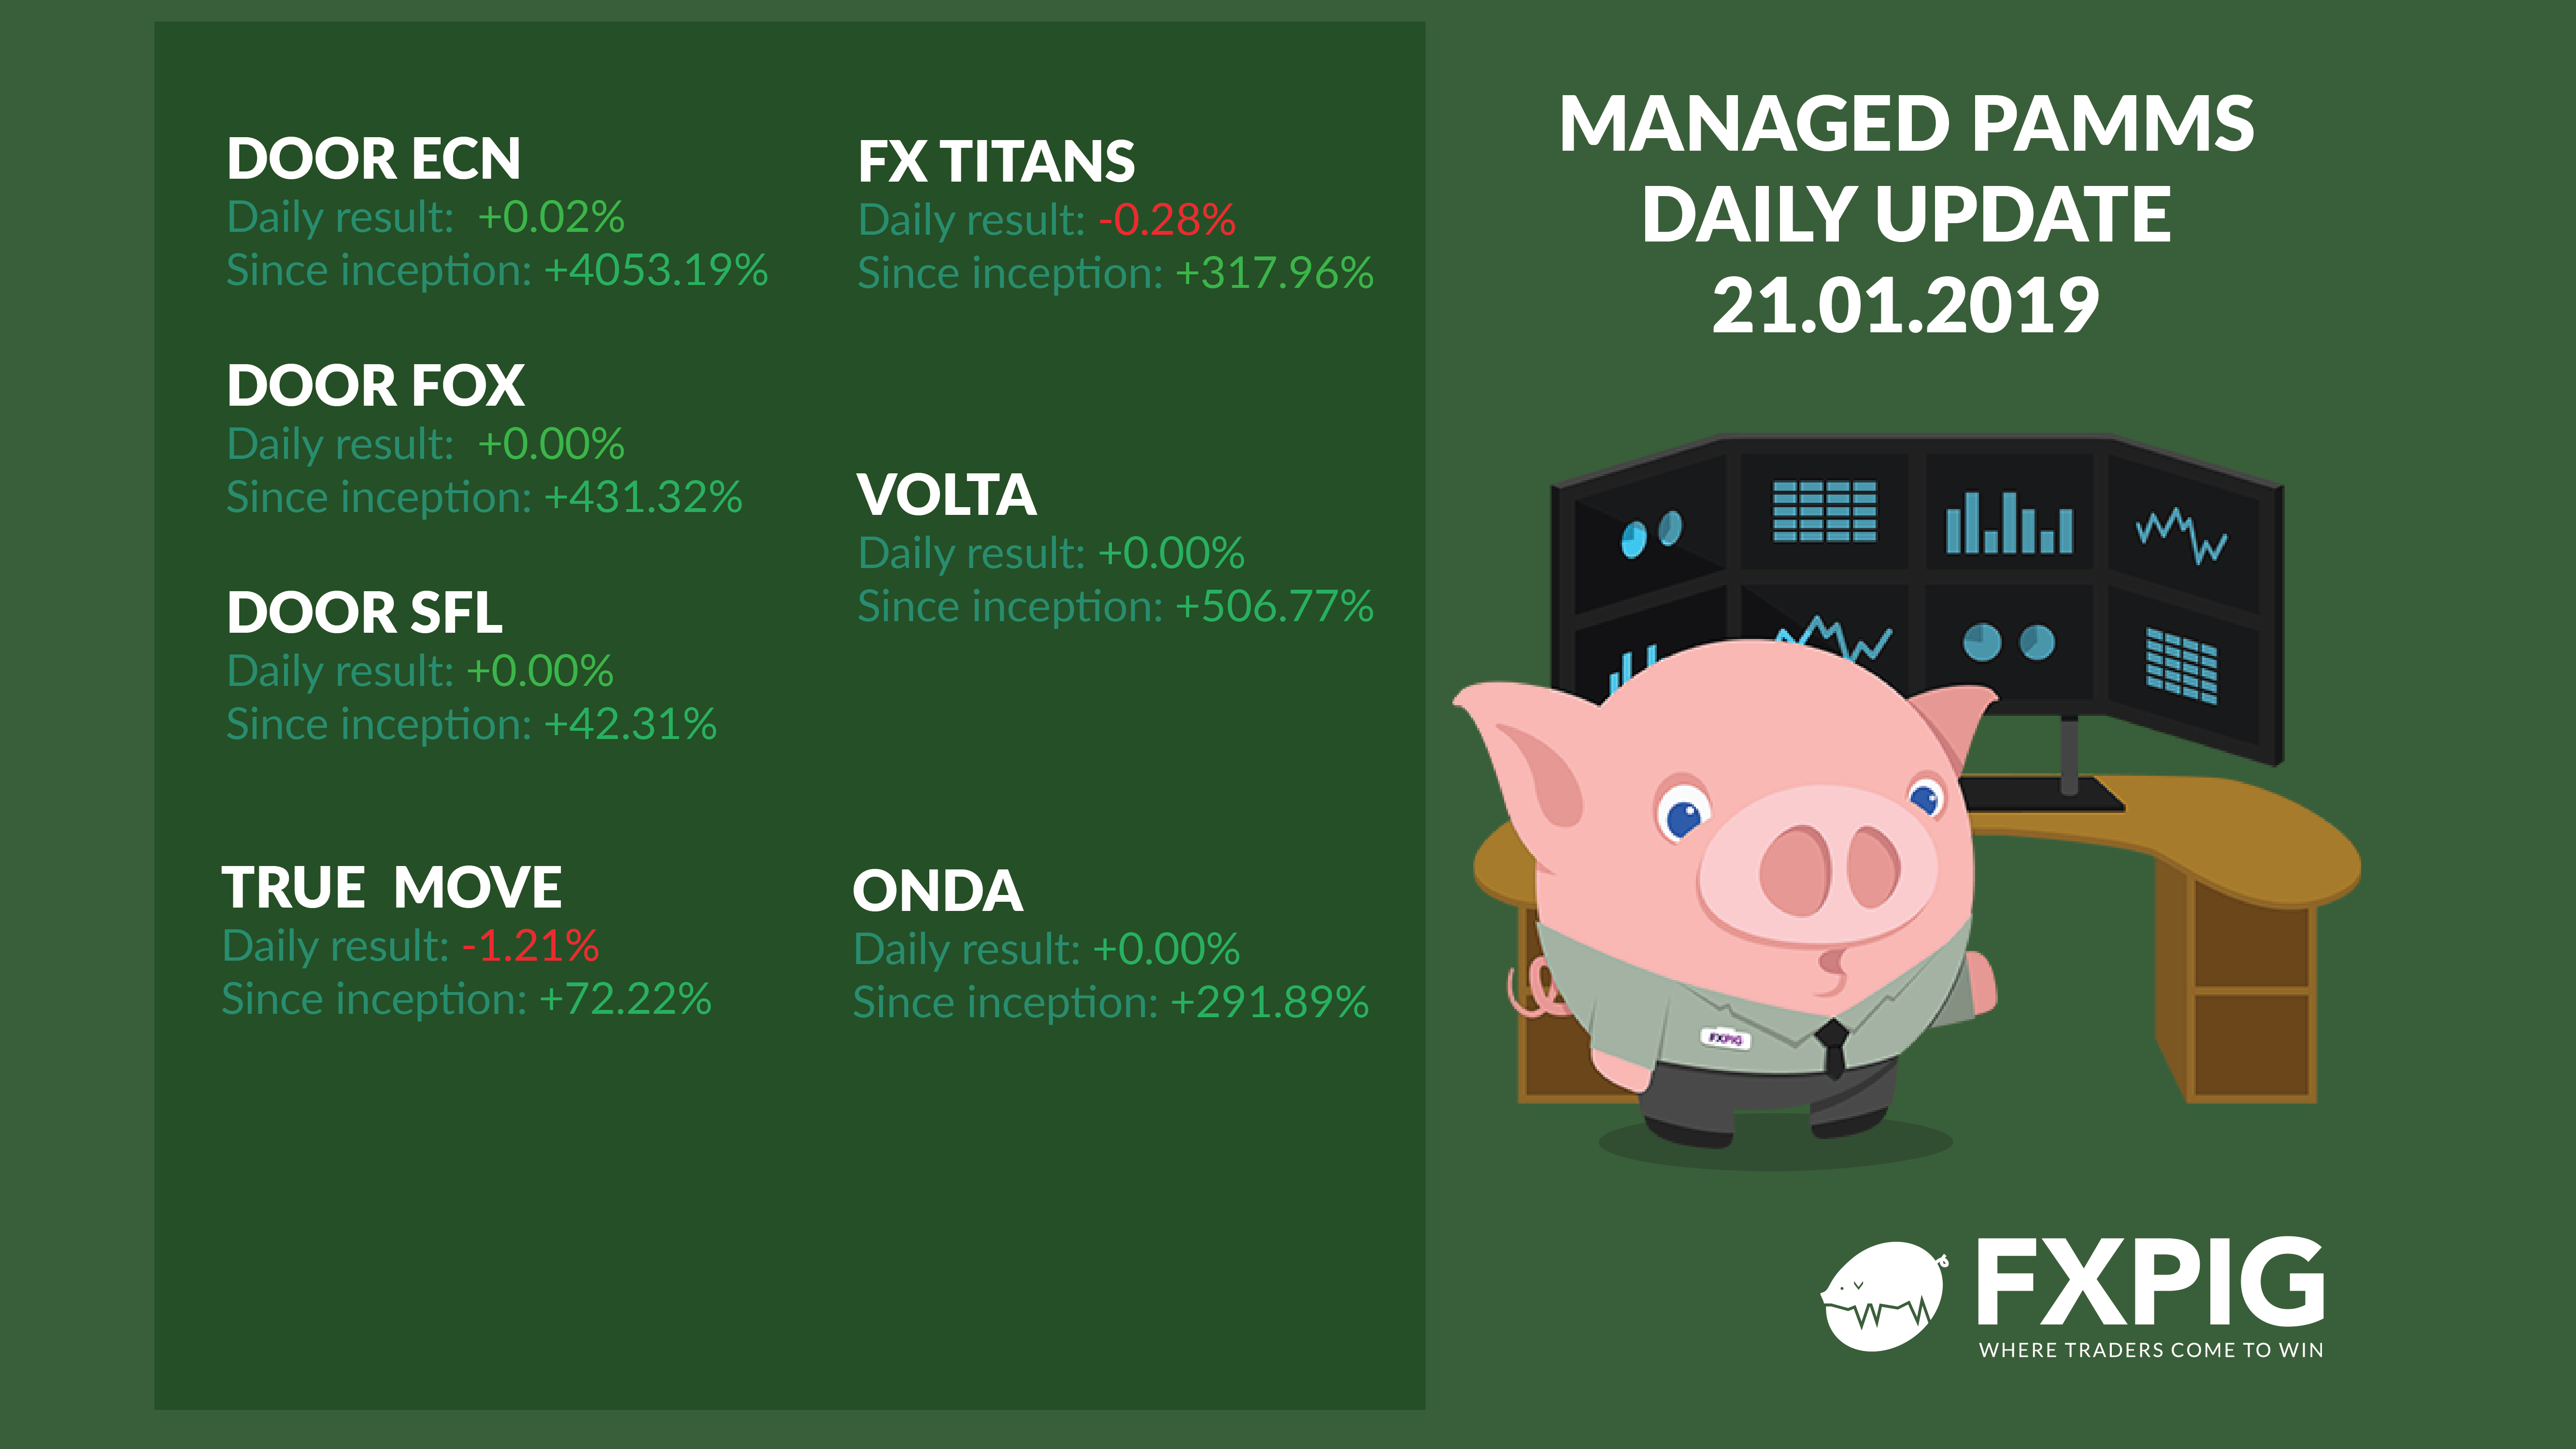 Forex_Trading_Fx_Trader_FXPIG_PAMMS_MANAGED_ACCOUNTS_PROFIT_21.01.2019